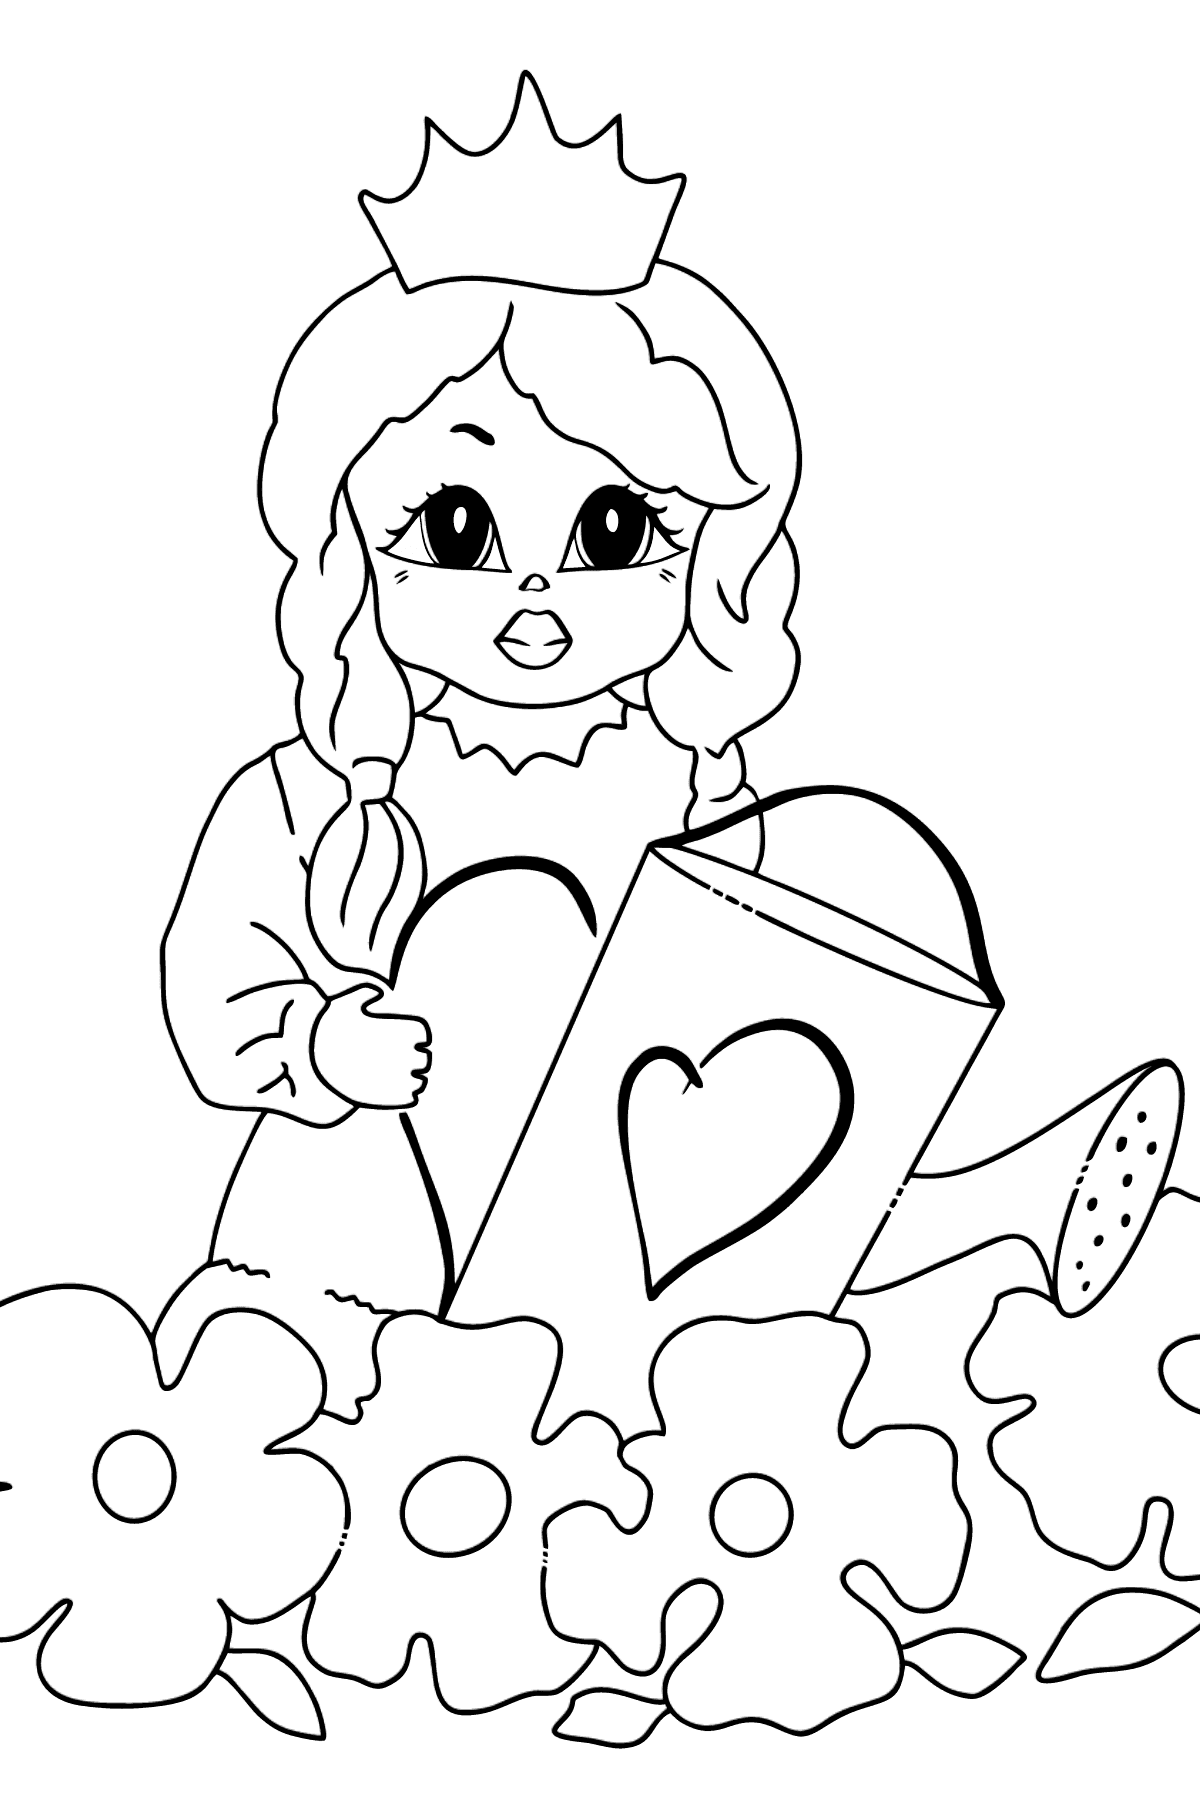 Coloring Picture - A Princess with a Watering Can - Coloring Pages for Kids